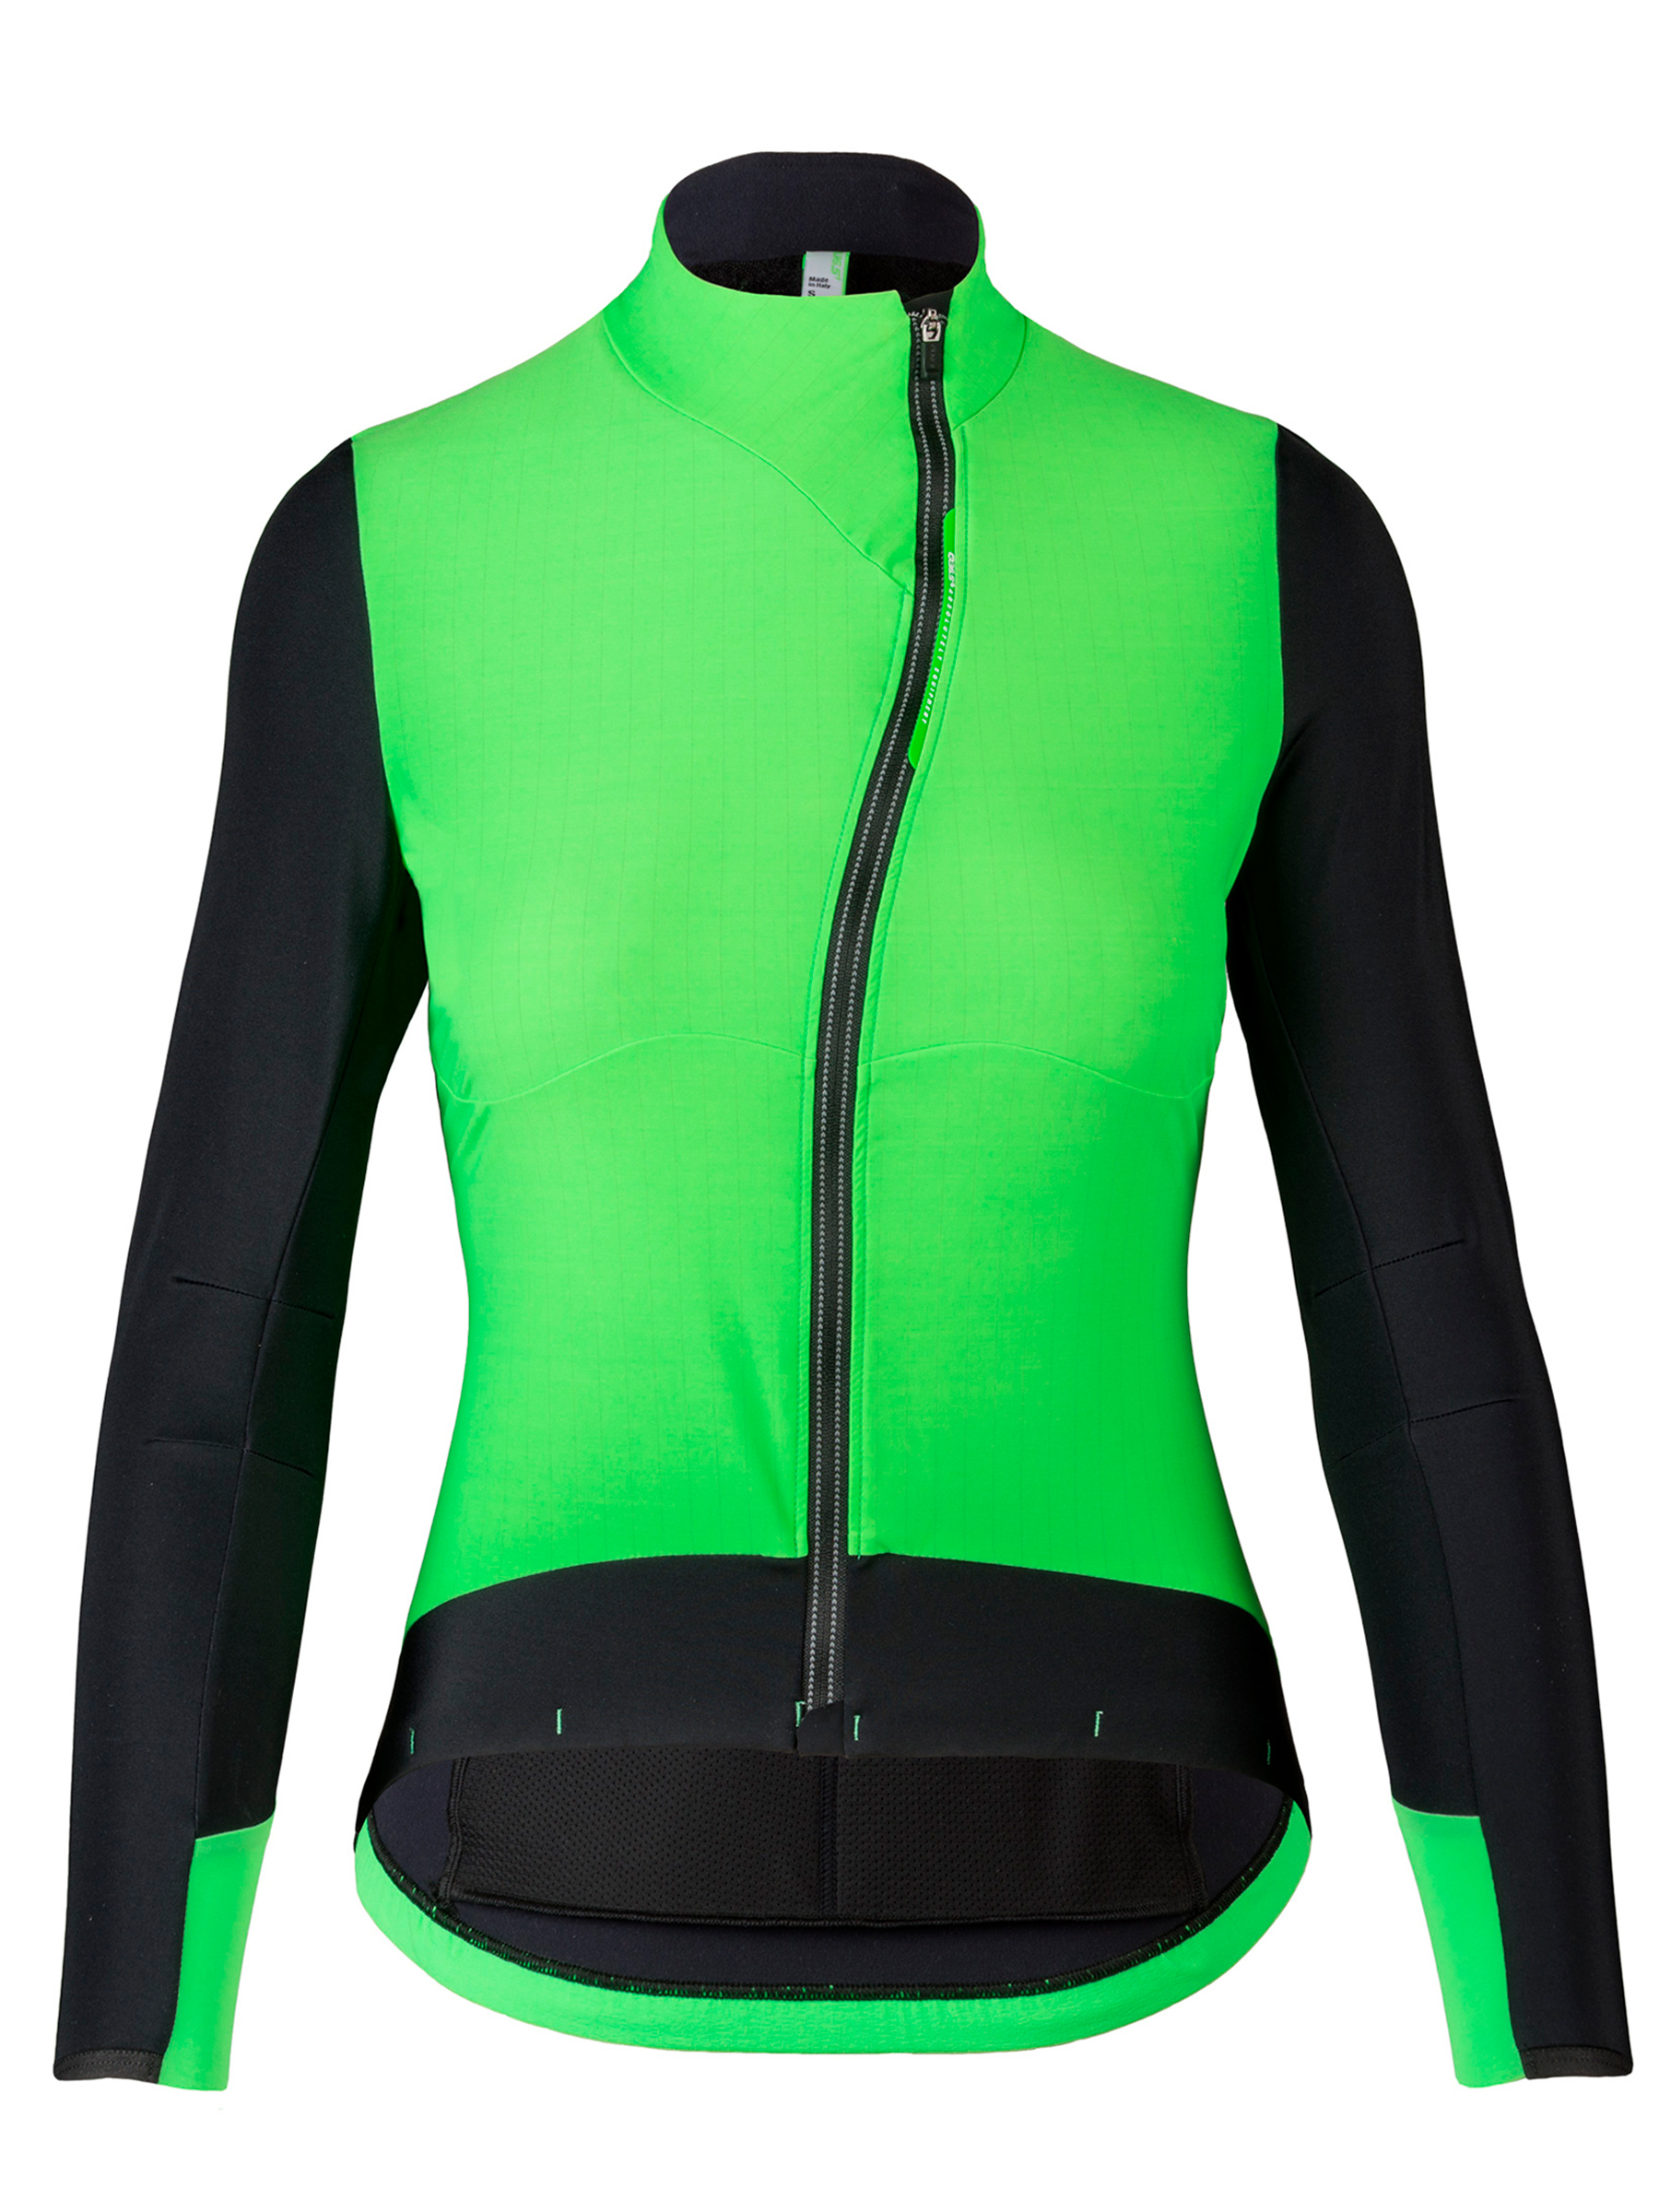 Womens cycling jacekt Hybrid Jacket Lady